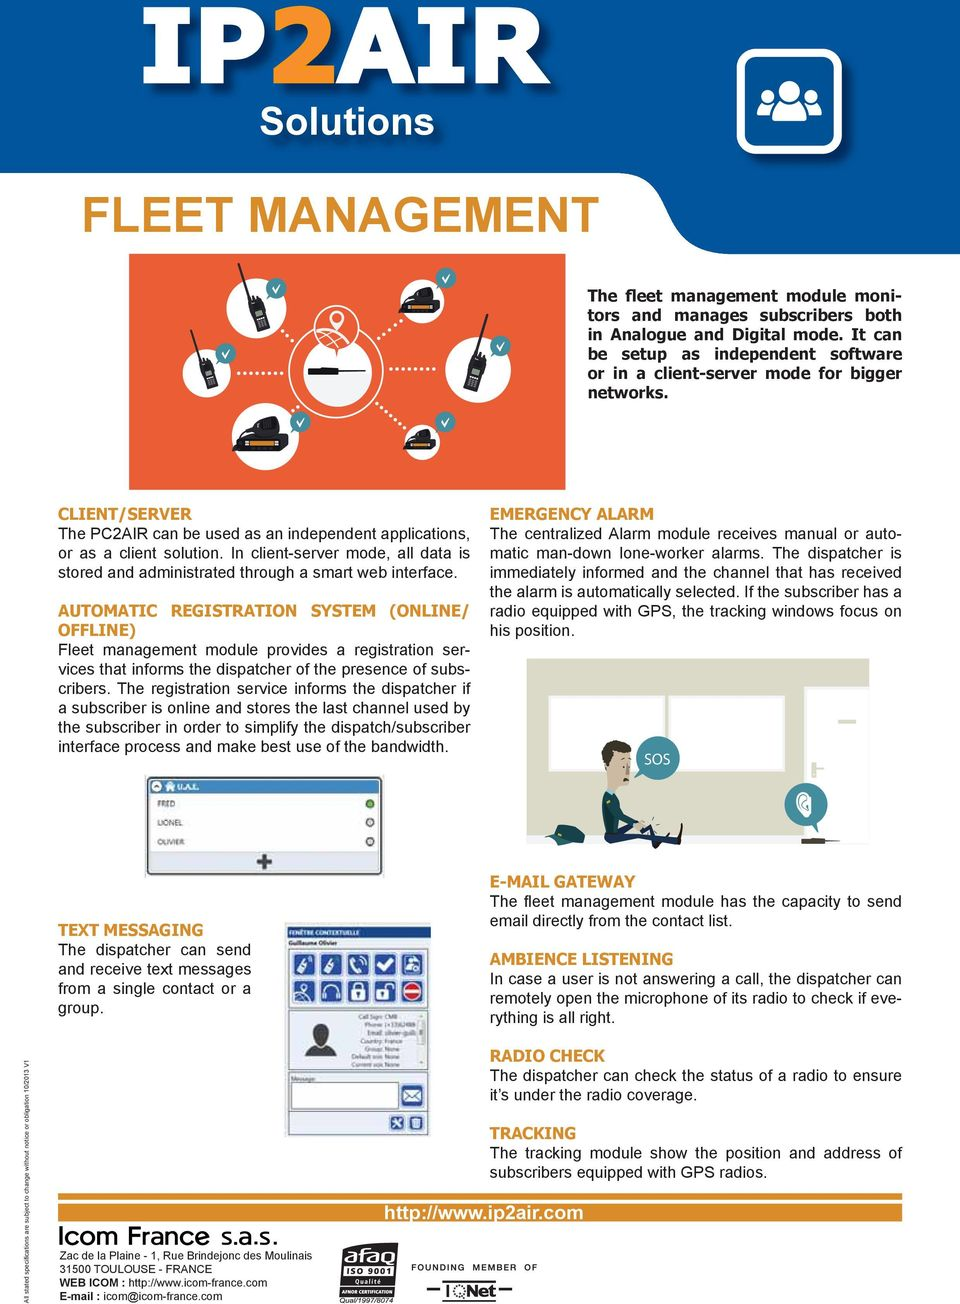 AUTOMATIC REGISTRATION SYSTEM (ONLINE/ OFFLINE) Fleet management module provides a registration services that informs the dispatcher of the presence of subscribers.